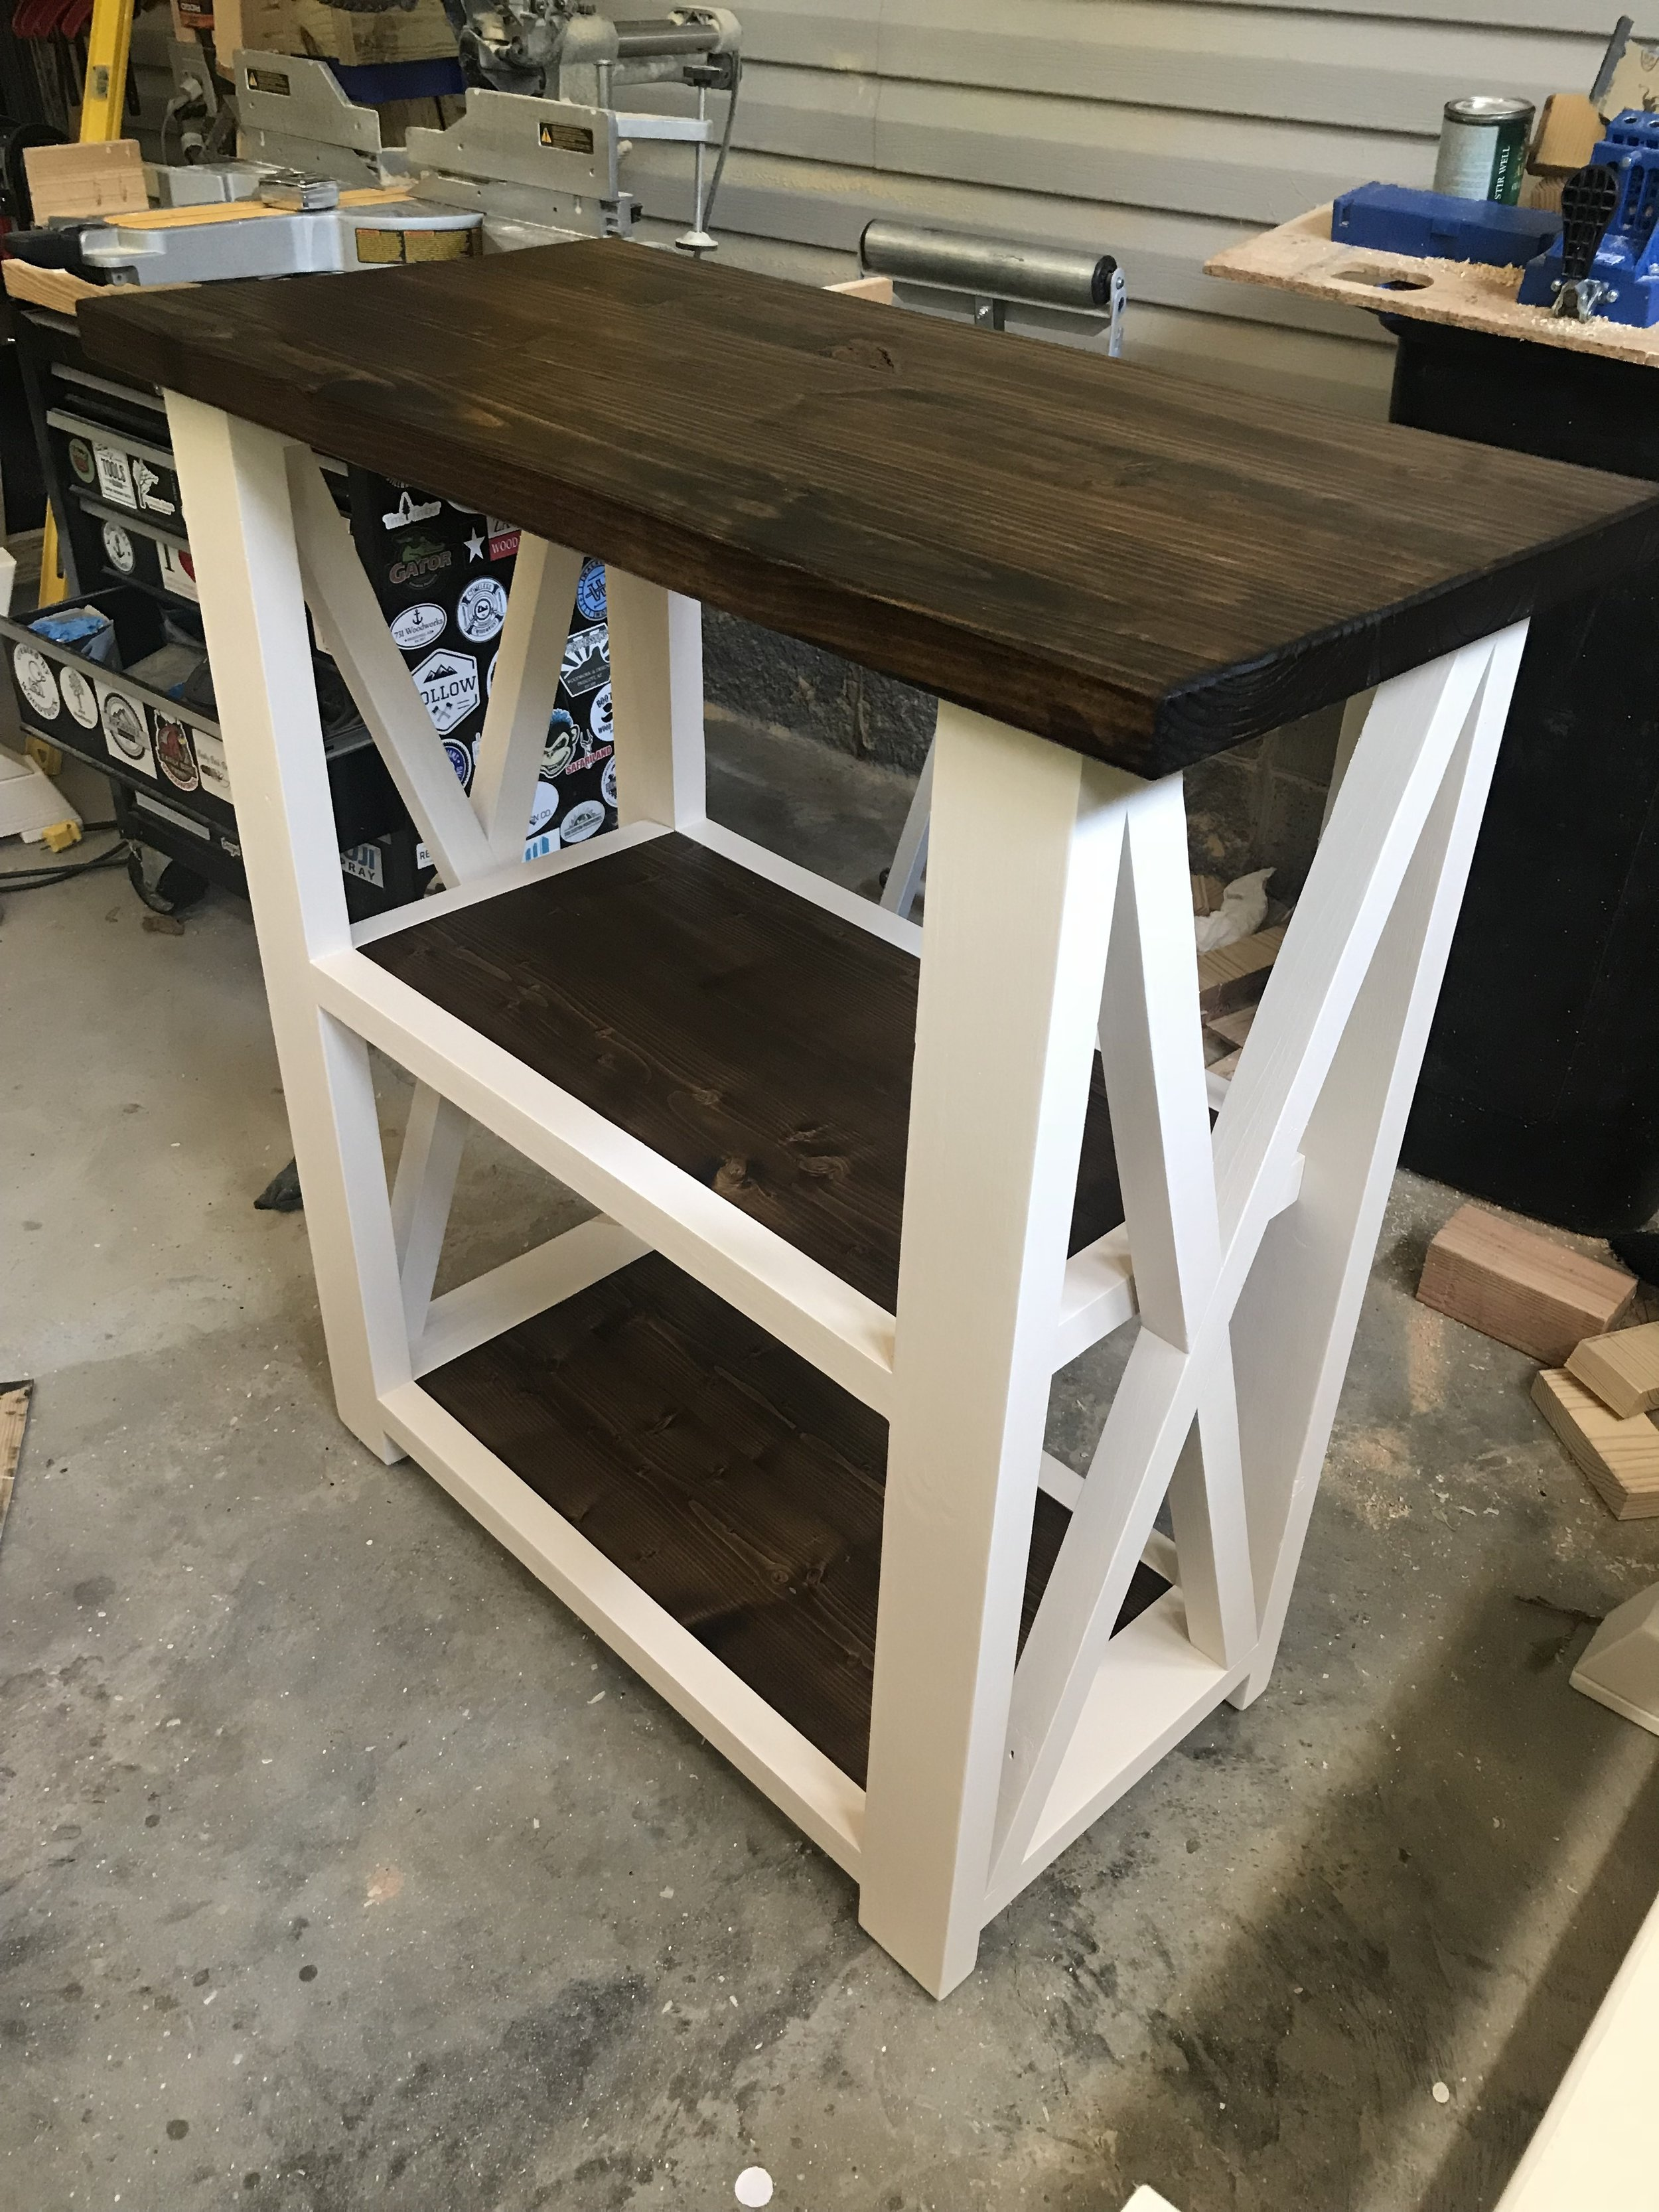 Diy Farmhouse Console Table Video 731 Woodworks We Build Custom Furniture Diy Guides Monticello Ar